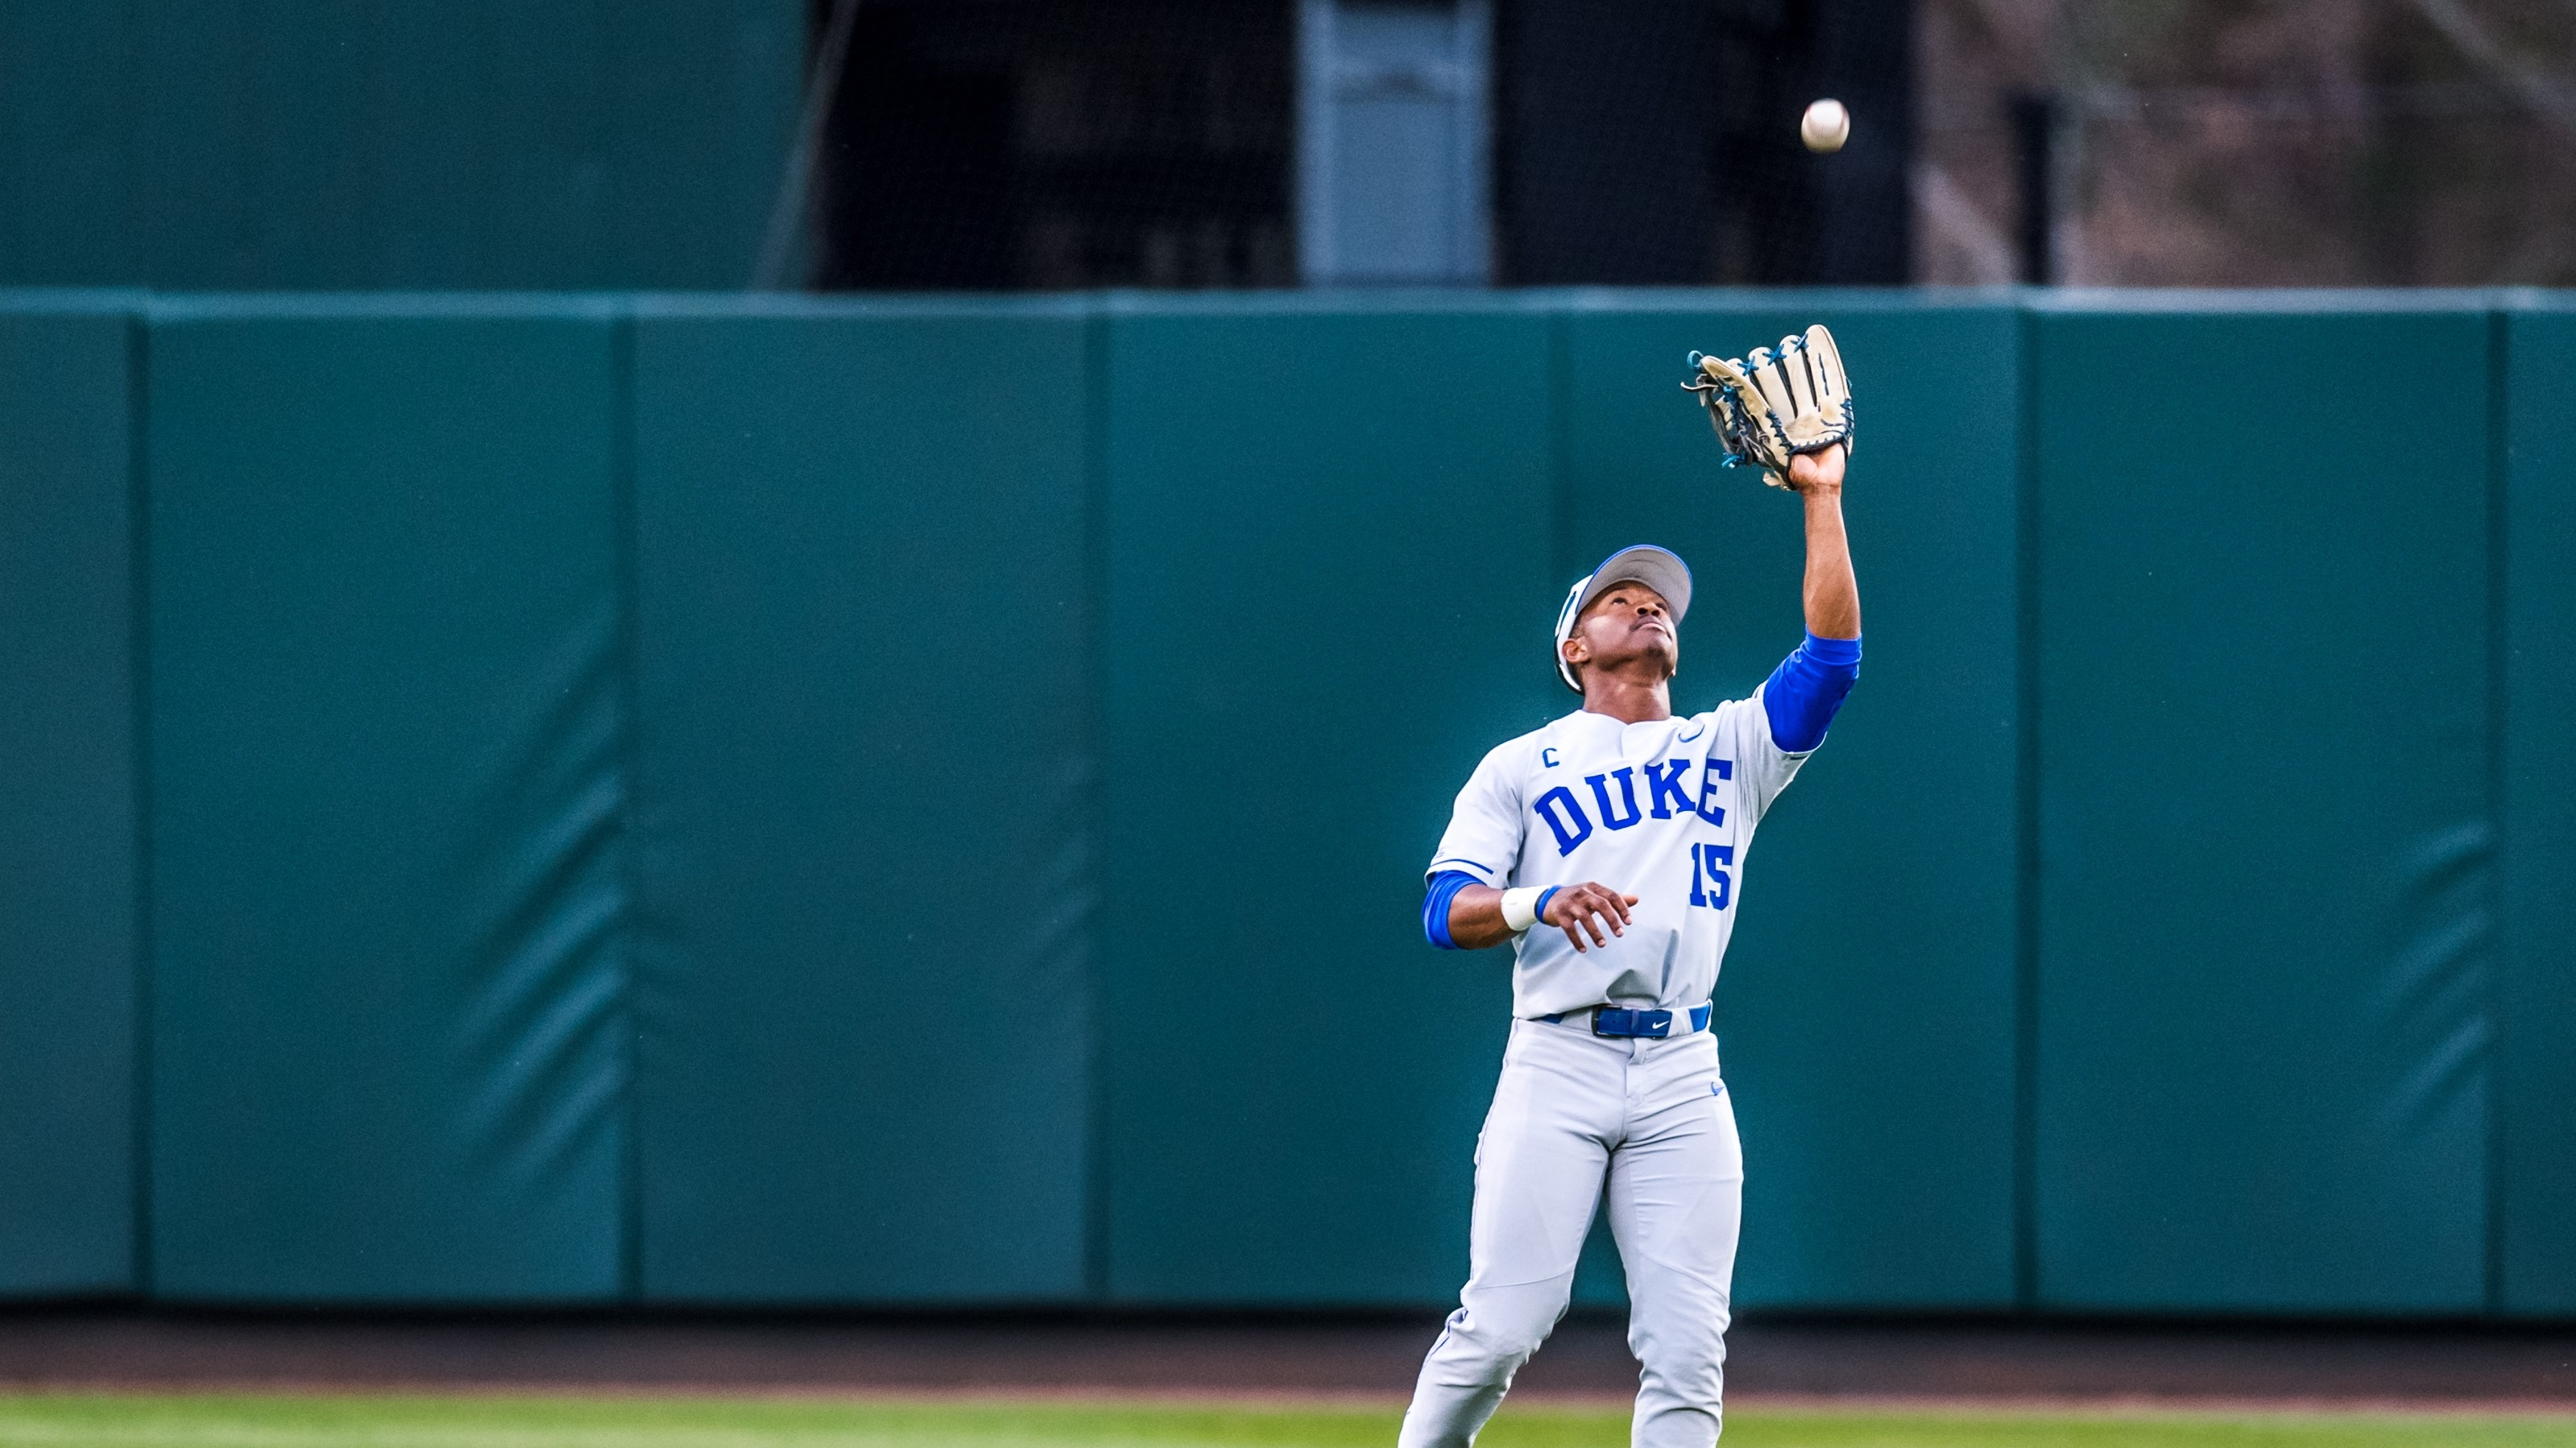 the latest 94a98 7d42e Duke Drops Midweek Contest at Liberty, 3-2 - Duke University